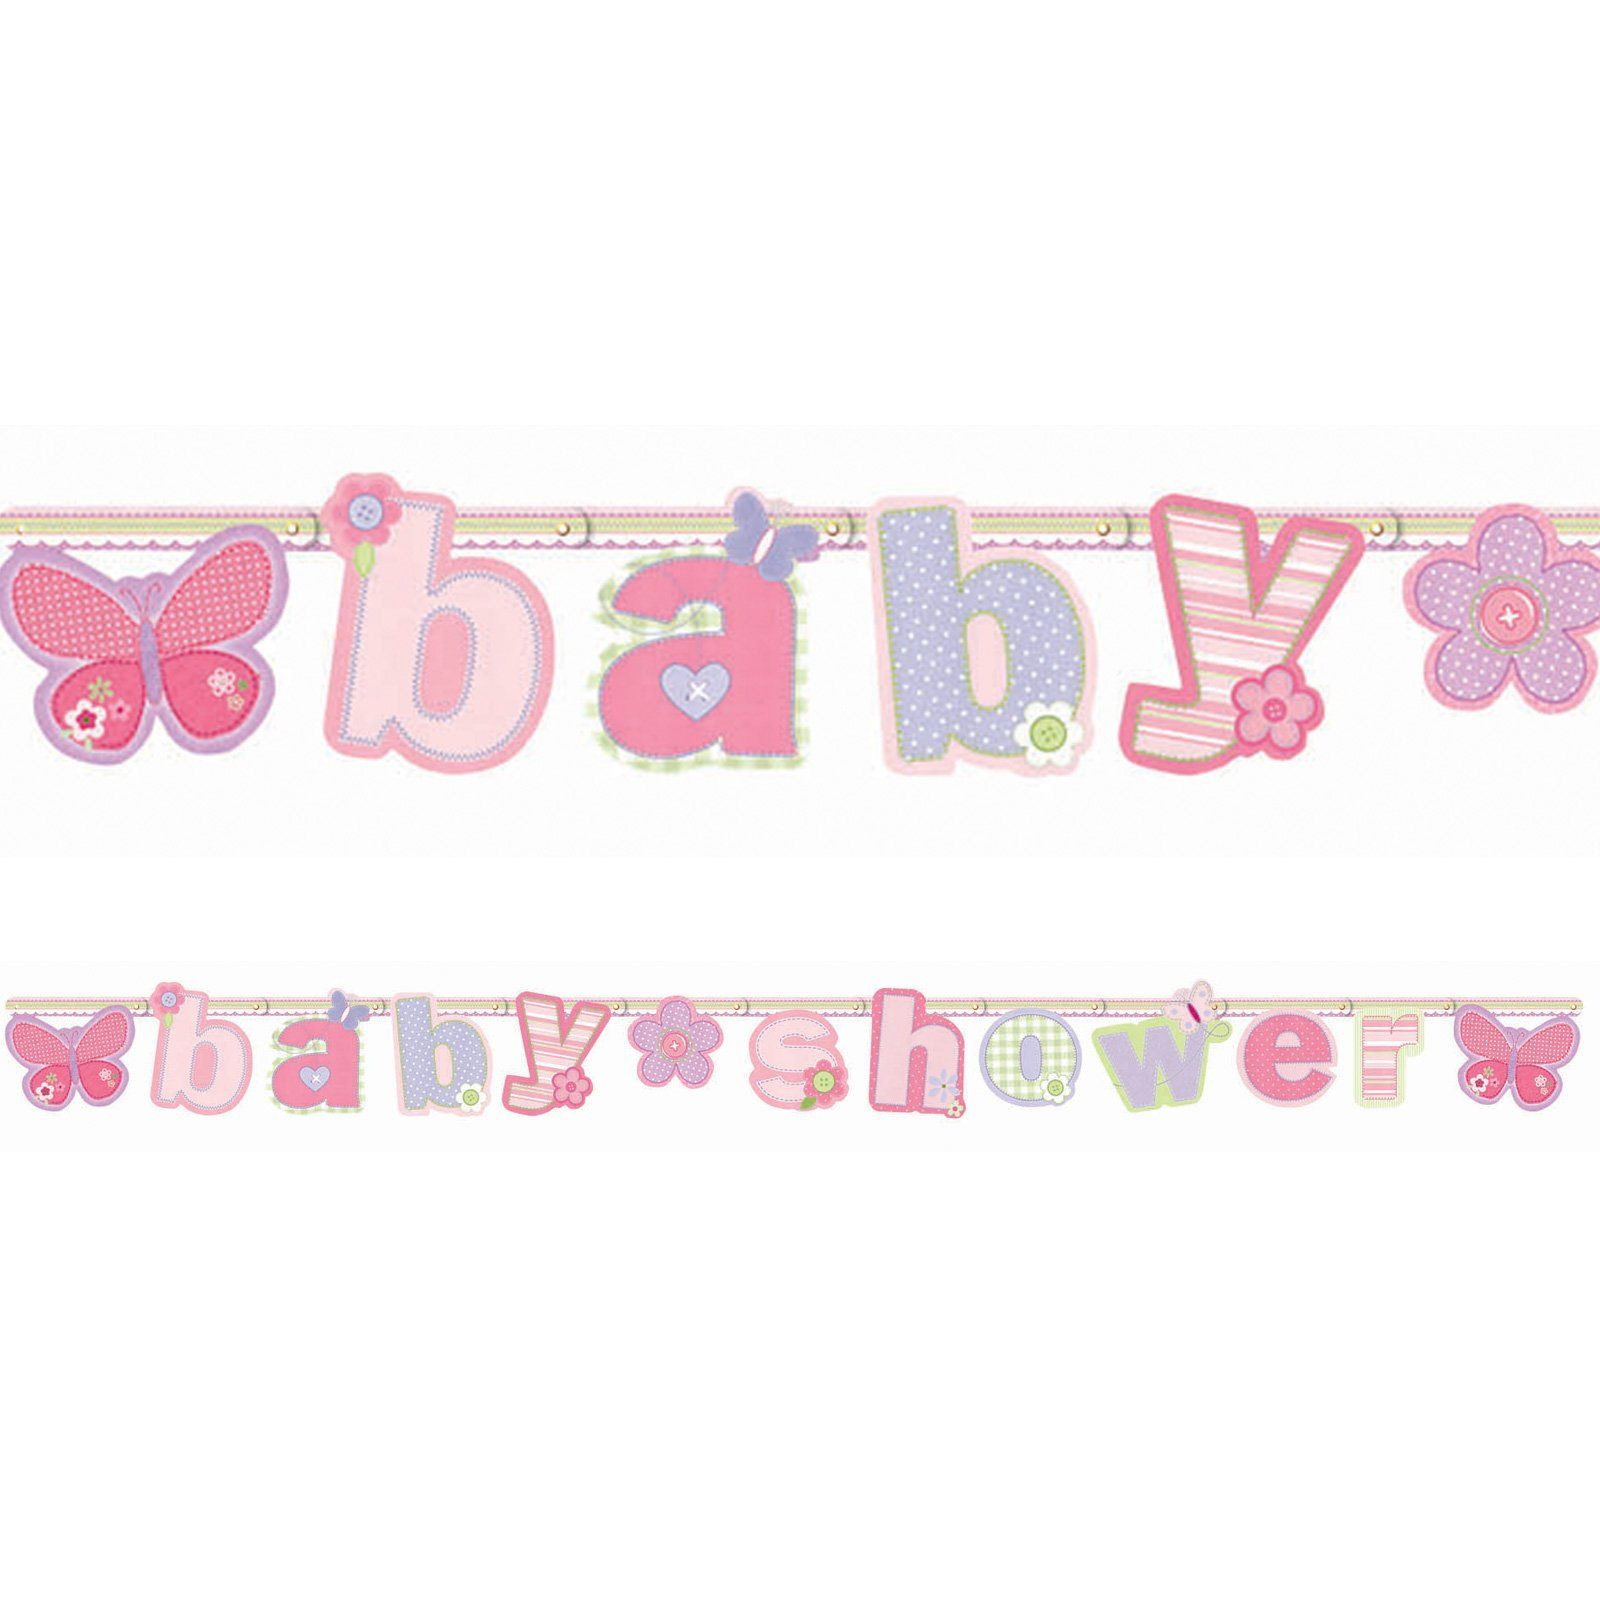 Website Full Of Baby Shower Ideas